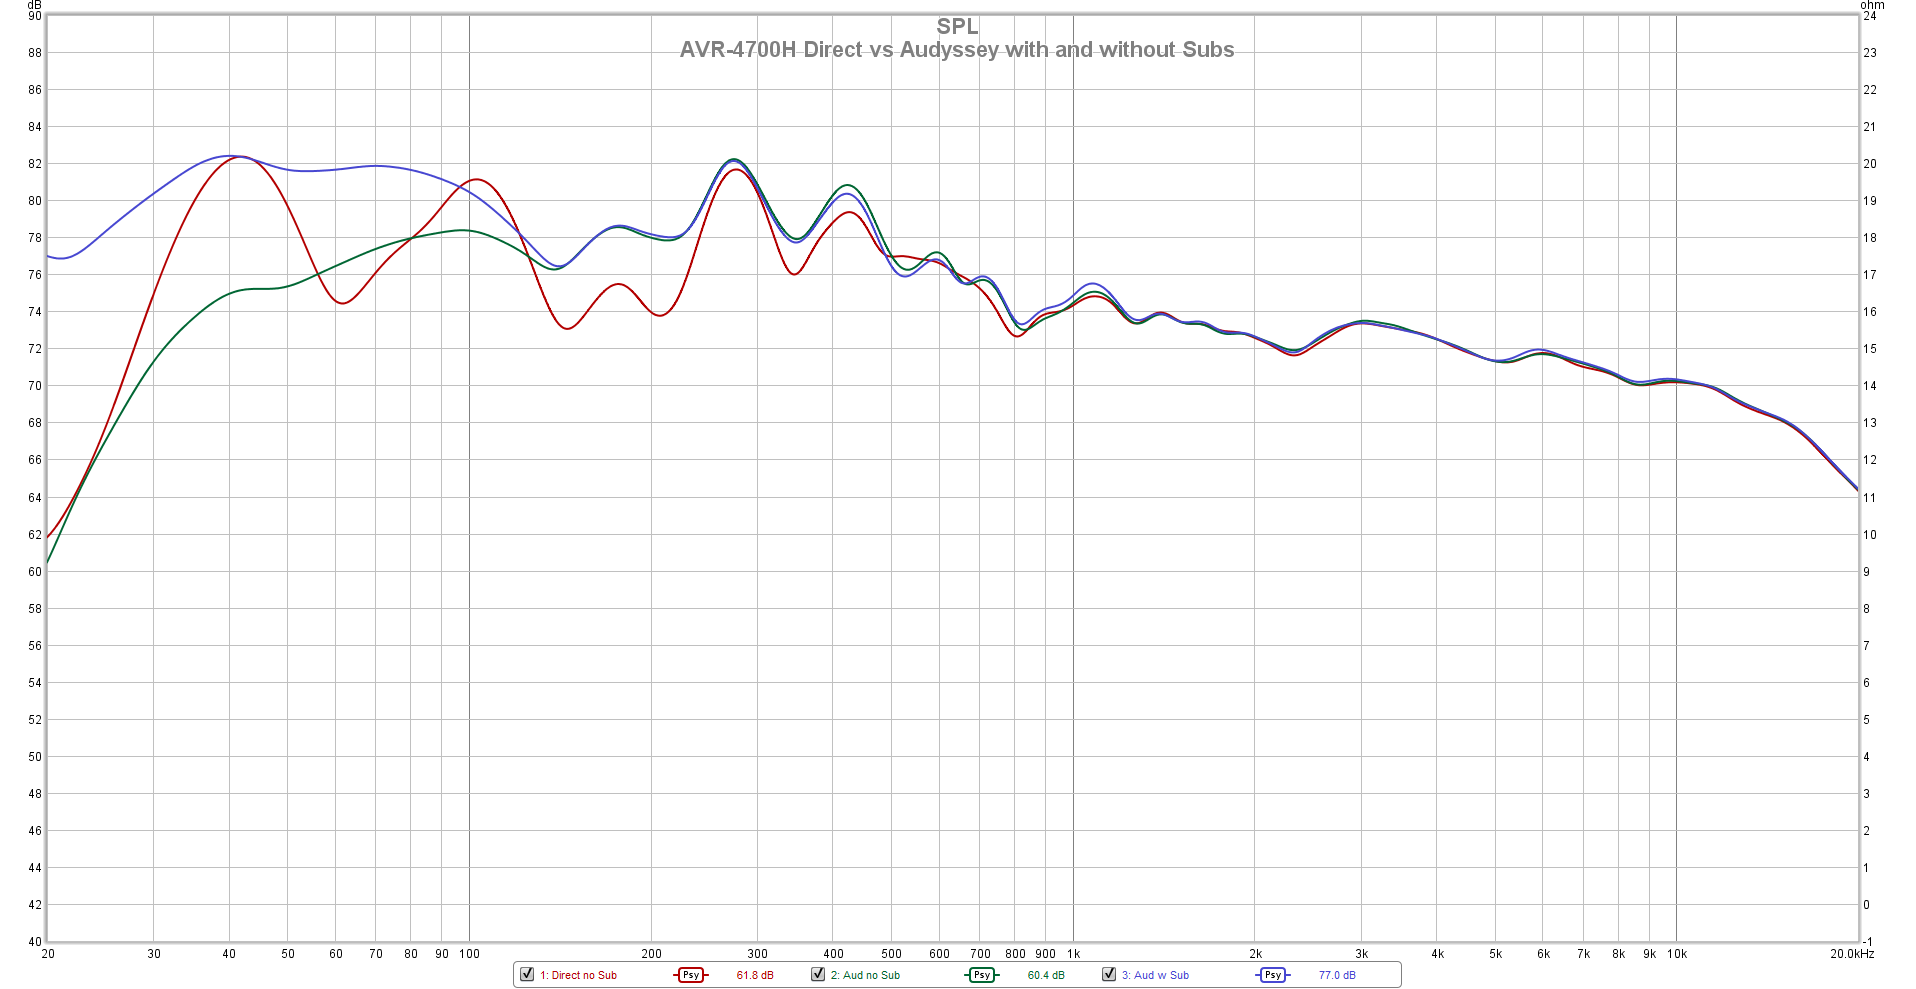 AVR-4700H Direct vs Audyssey with and without Subs Psy.png